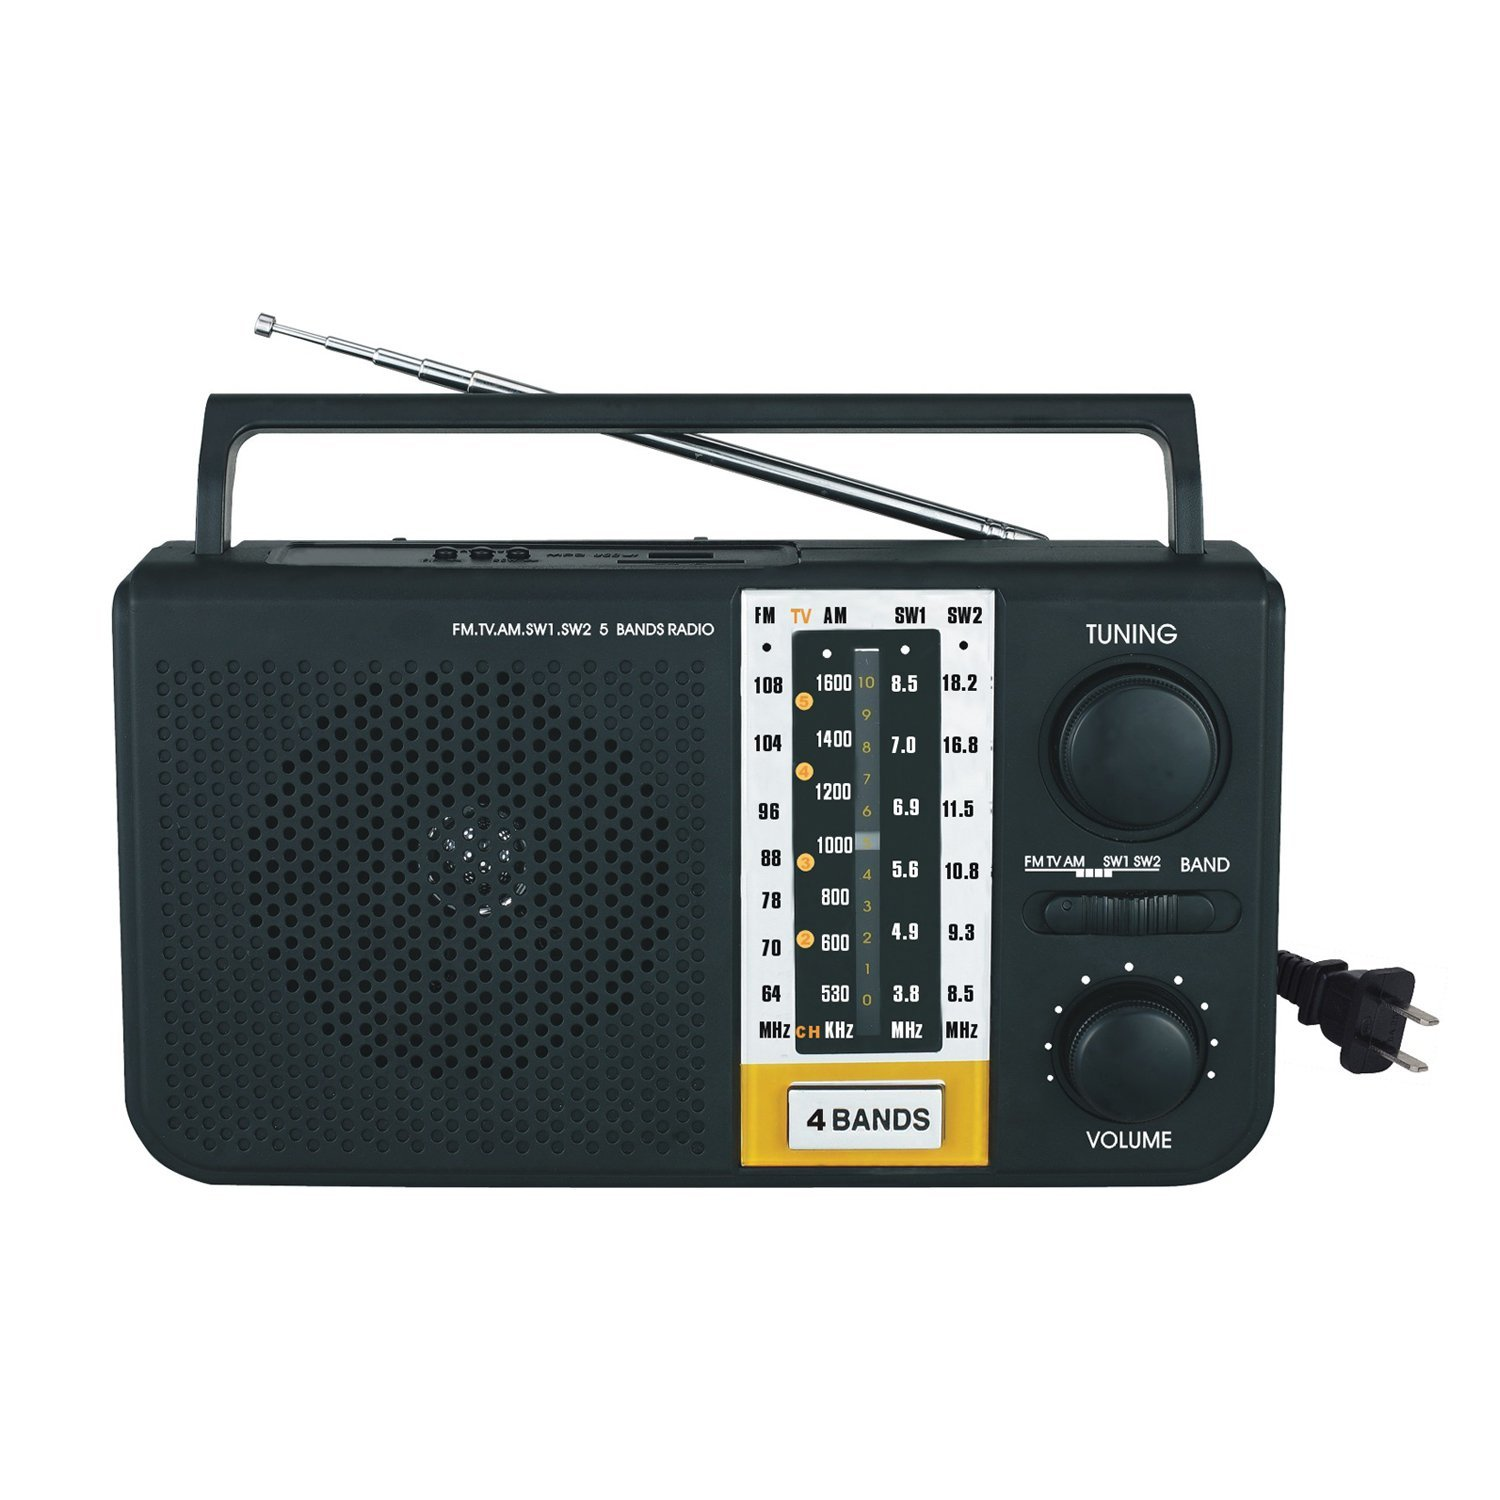 Mini Portable AM/FM/SW1/SW2/TV 5 Bands Radio with Built-In SD & USB Inputs New